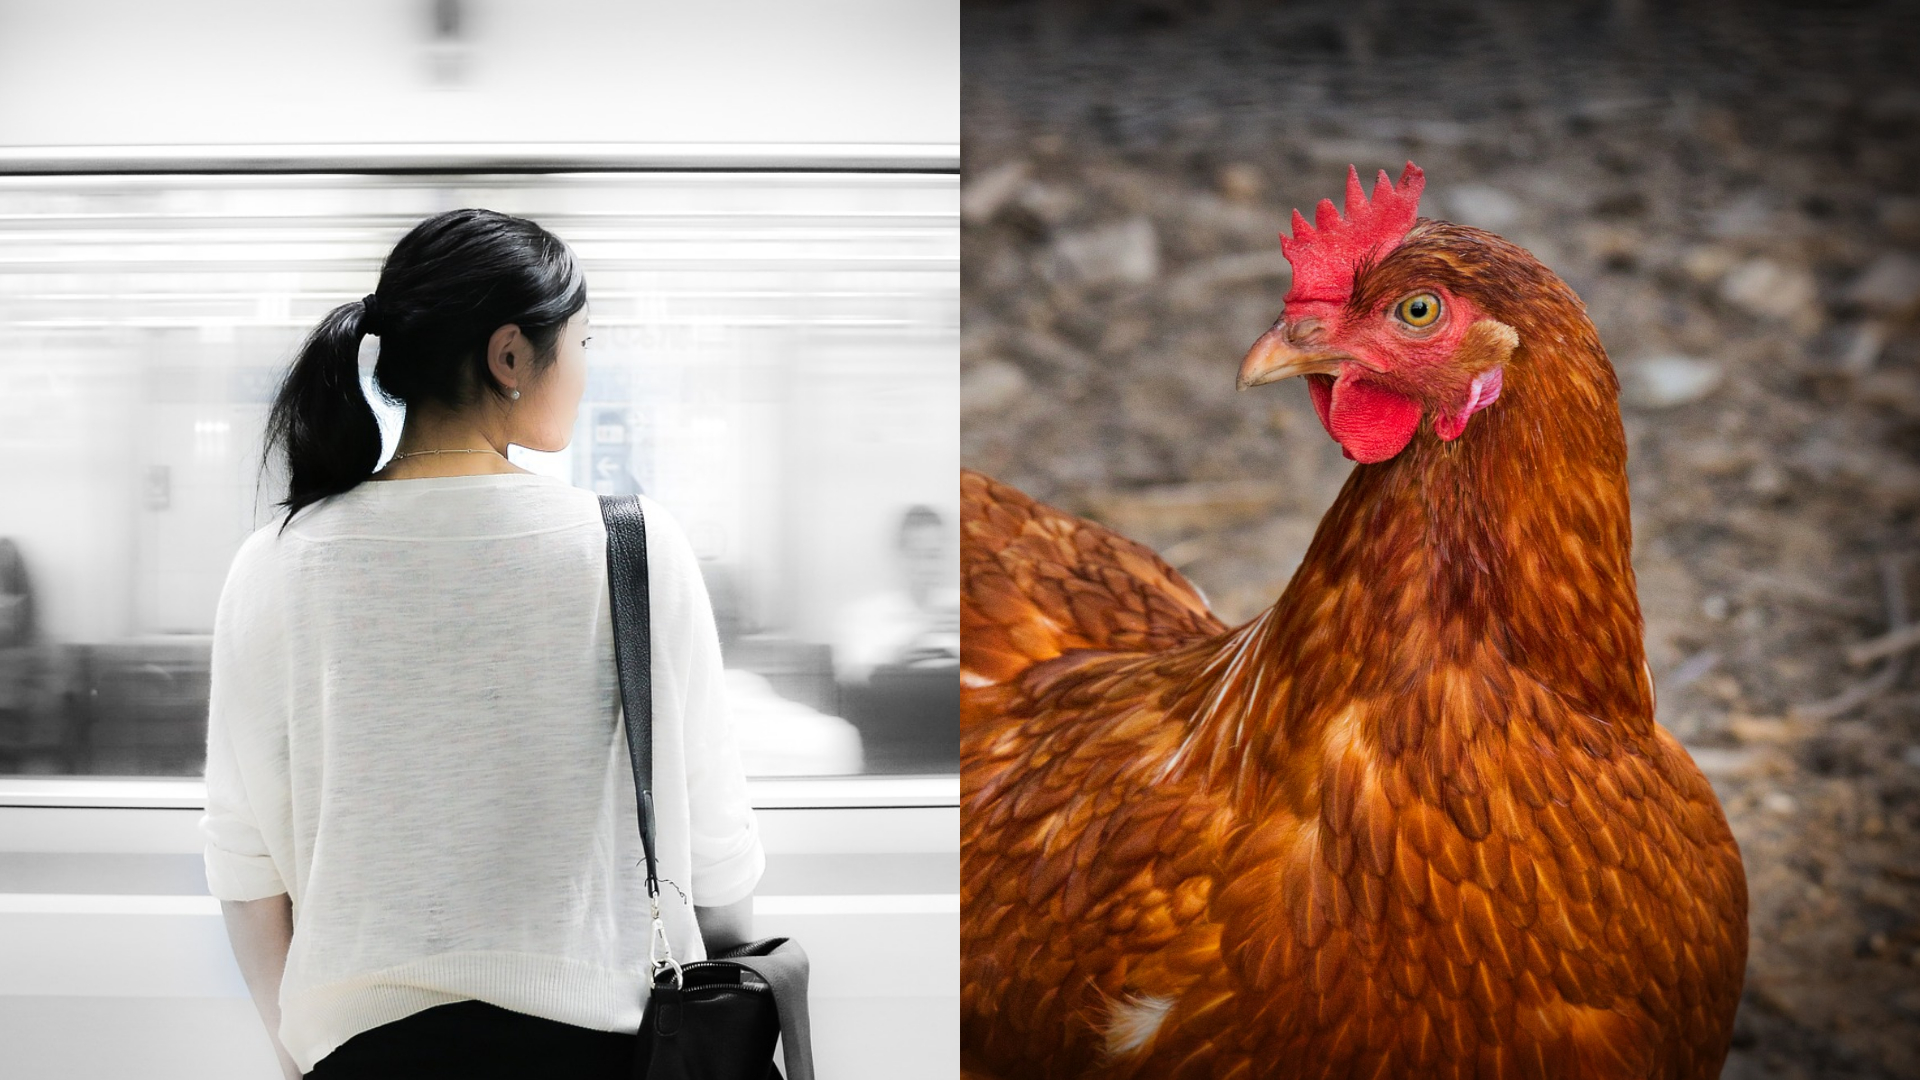 Woman in China Stopped From Bringing Live Chicken on Subway, Slaughters It on the Spot